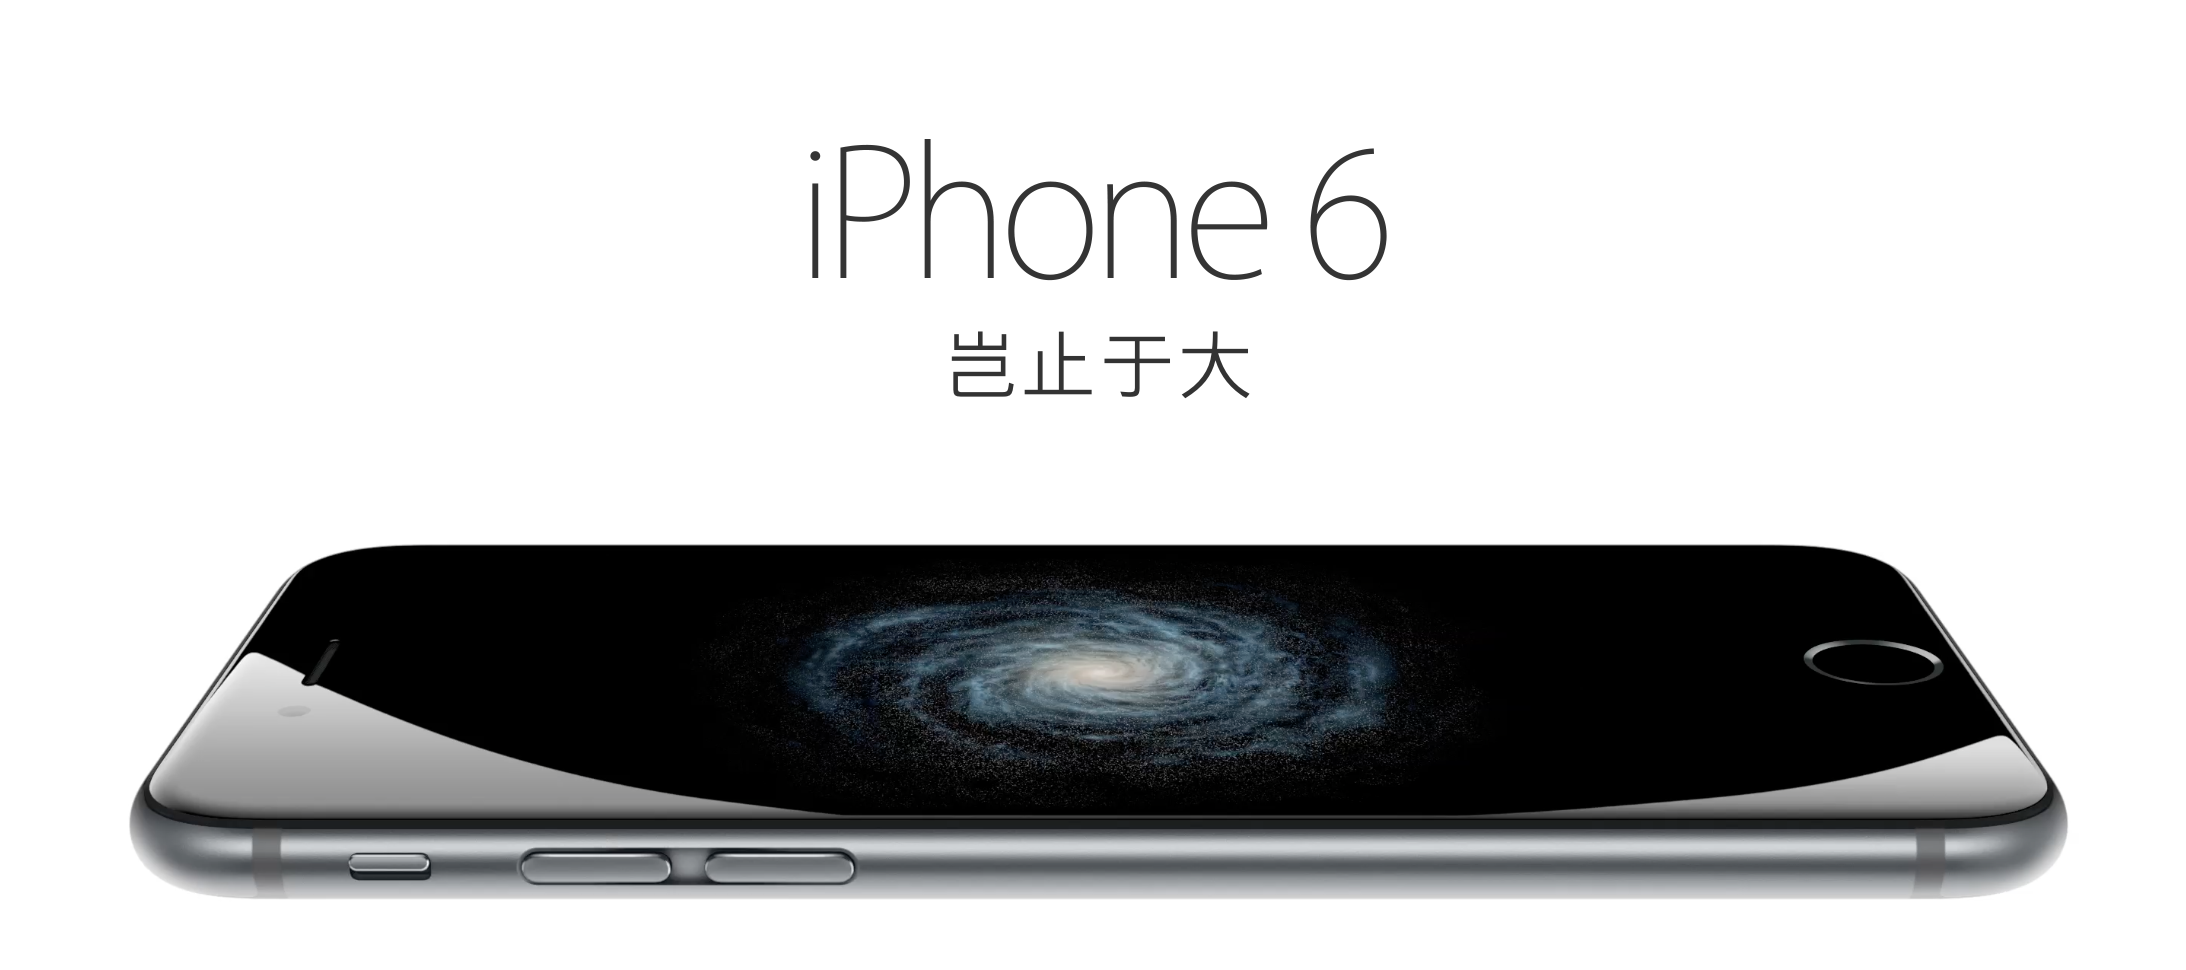 Luck is about to run out for iPhone 6 and iPhone 6 Plus smugglers in China